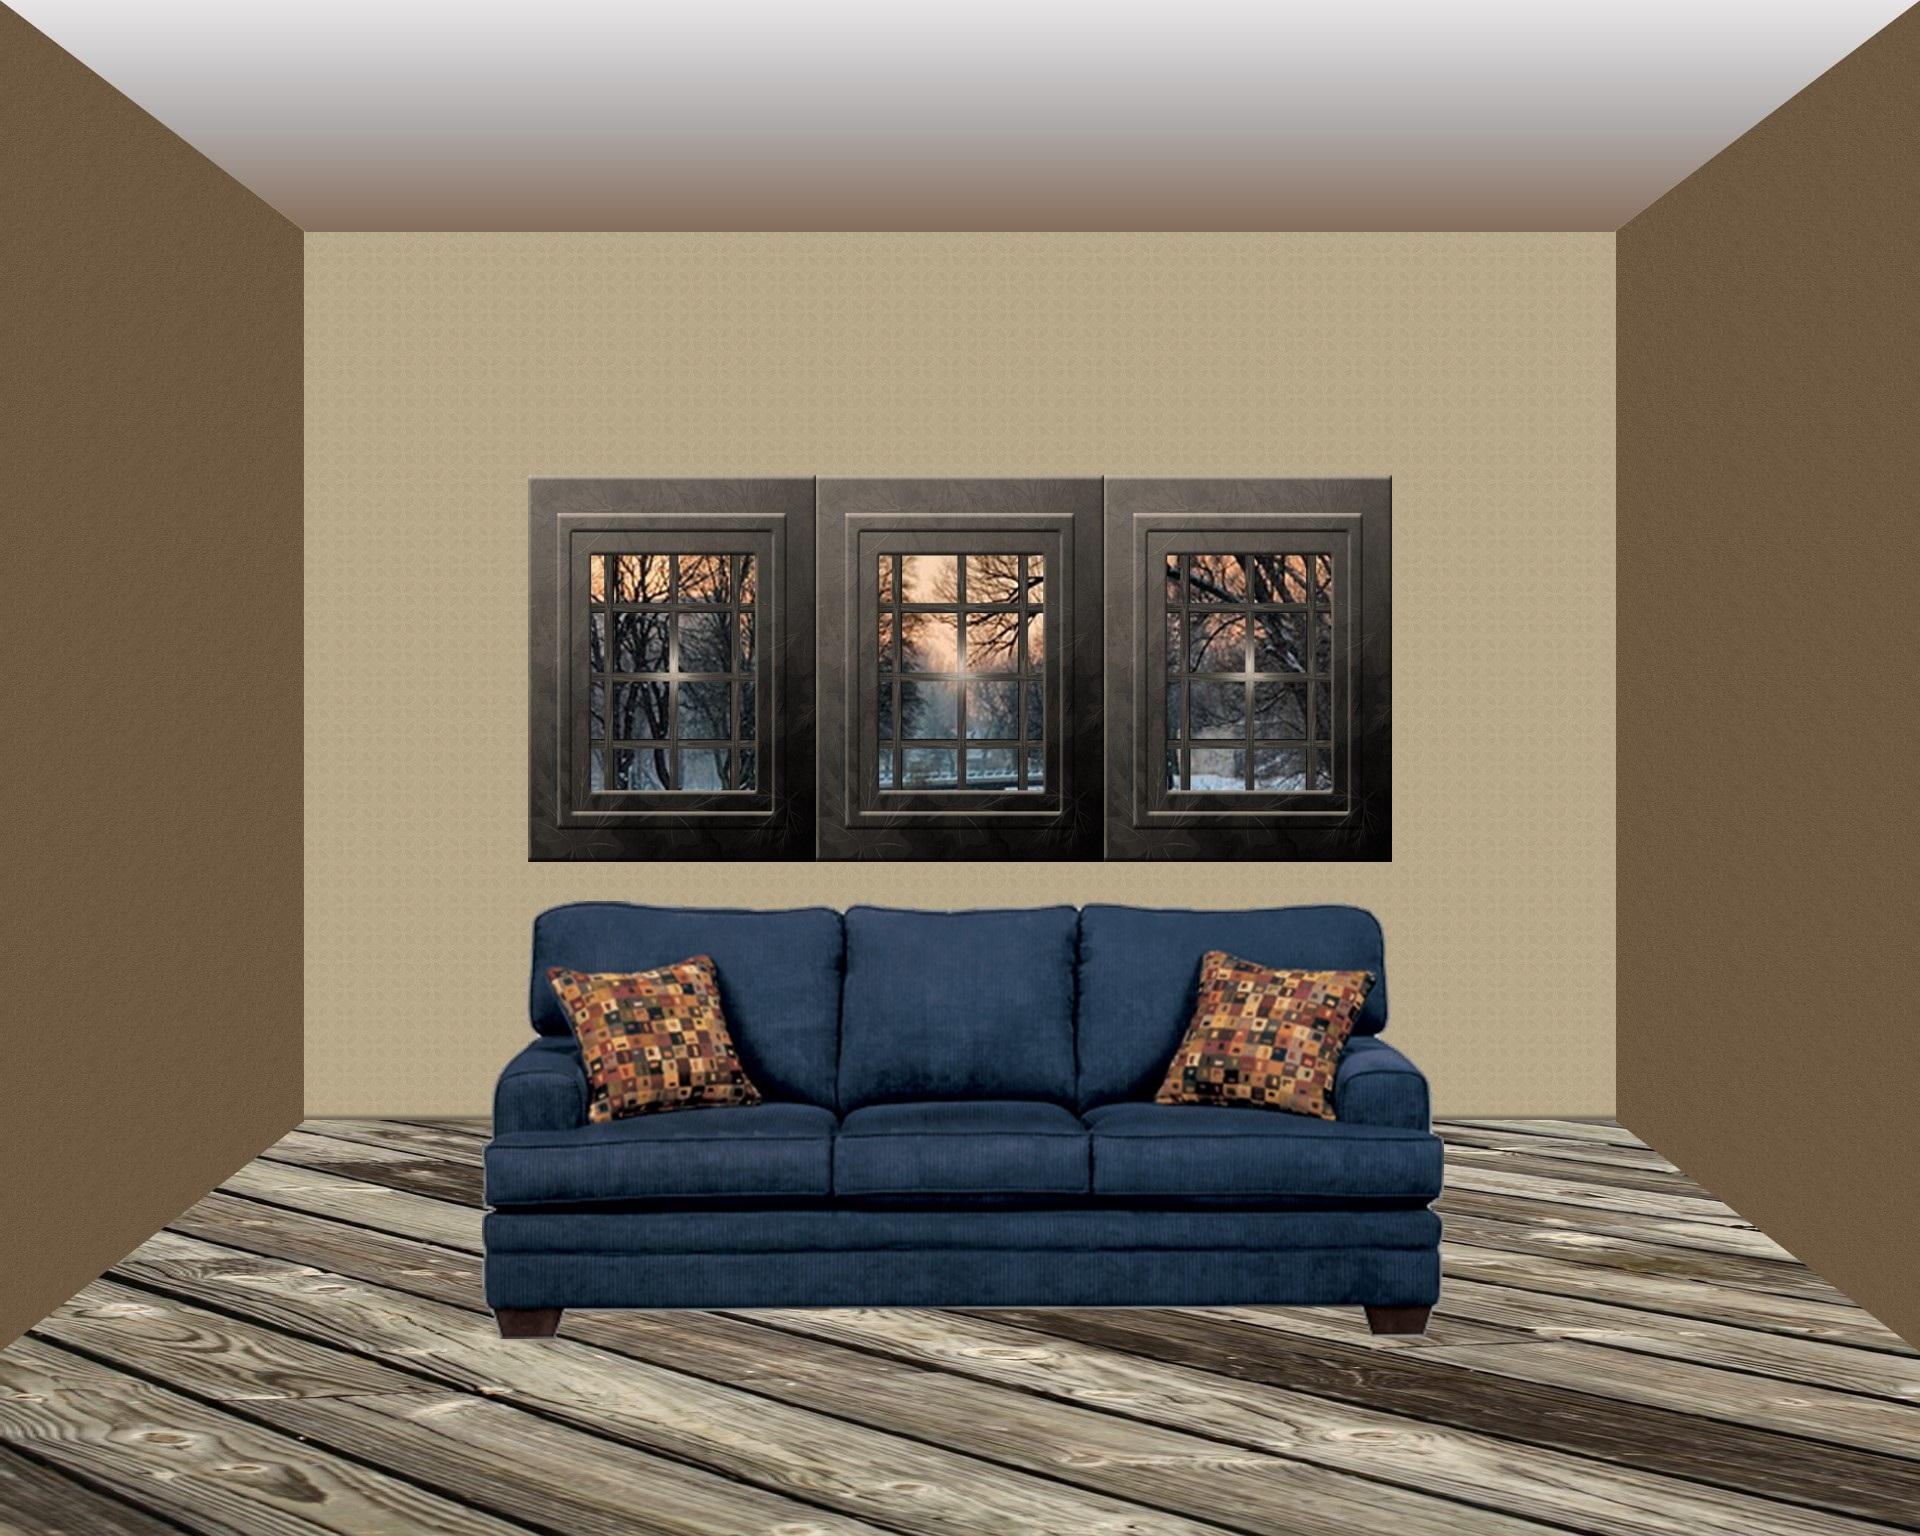 Free Images  room interior background living